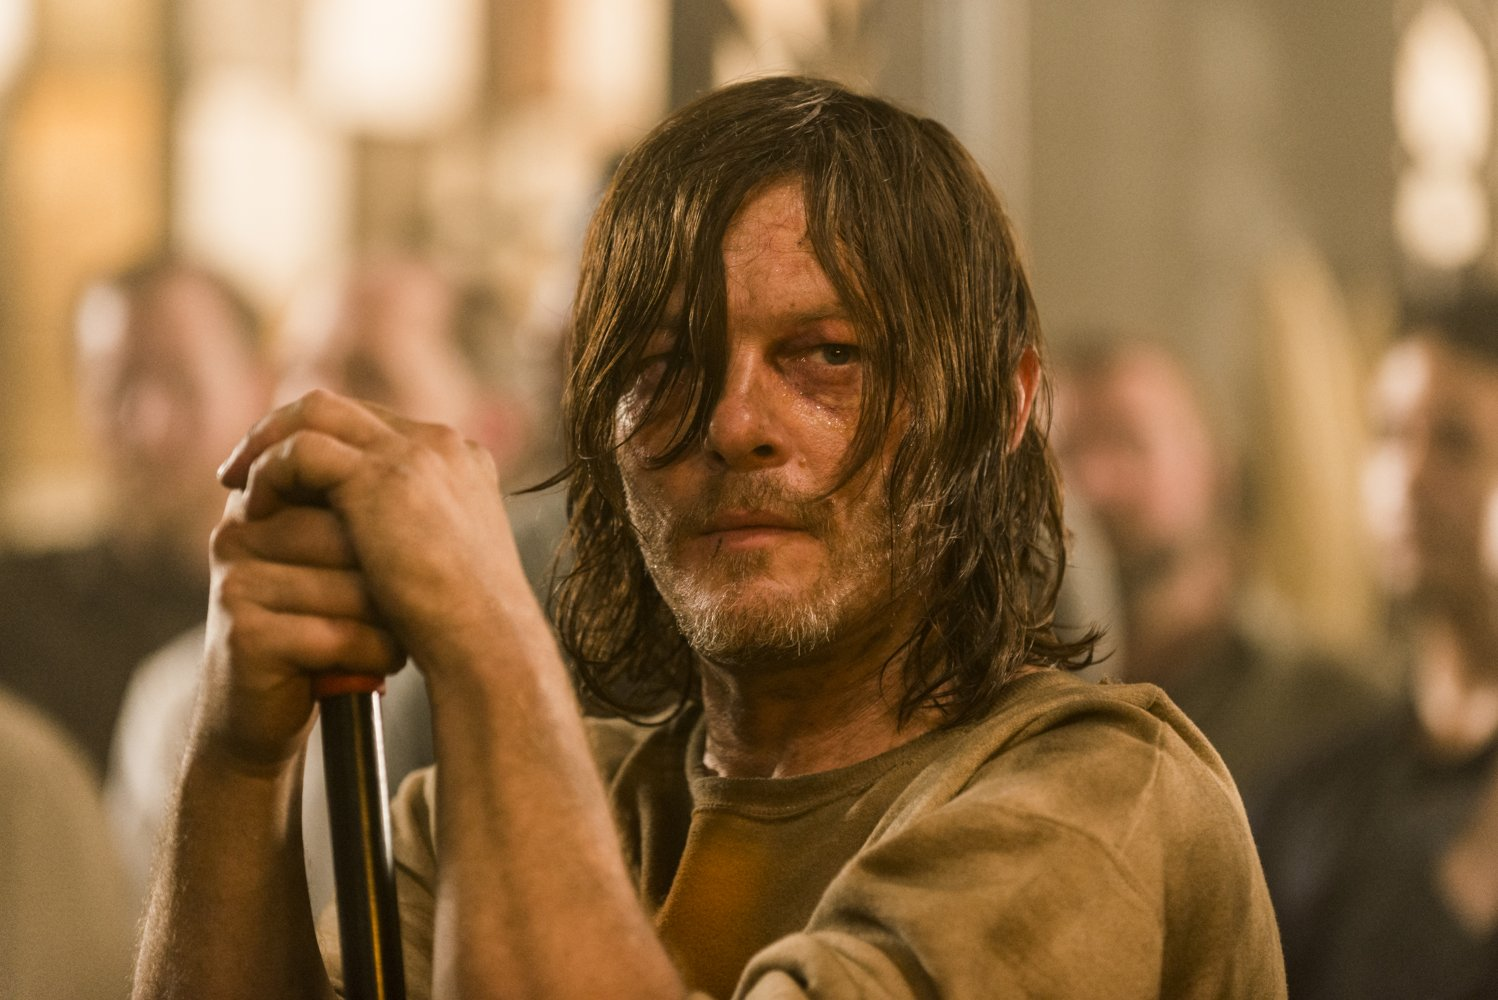 Darryl, cautivo por Negan, en la séptima temporada de The Walking Dead